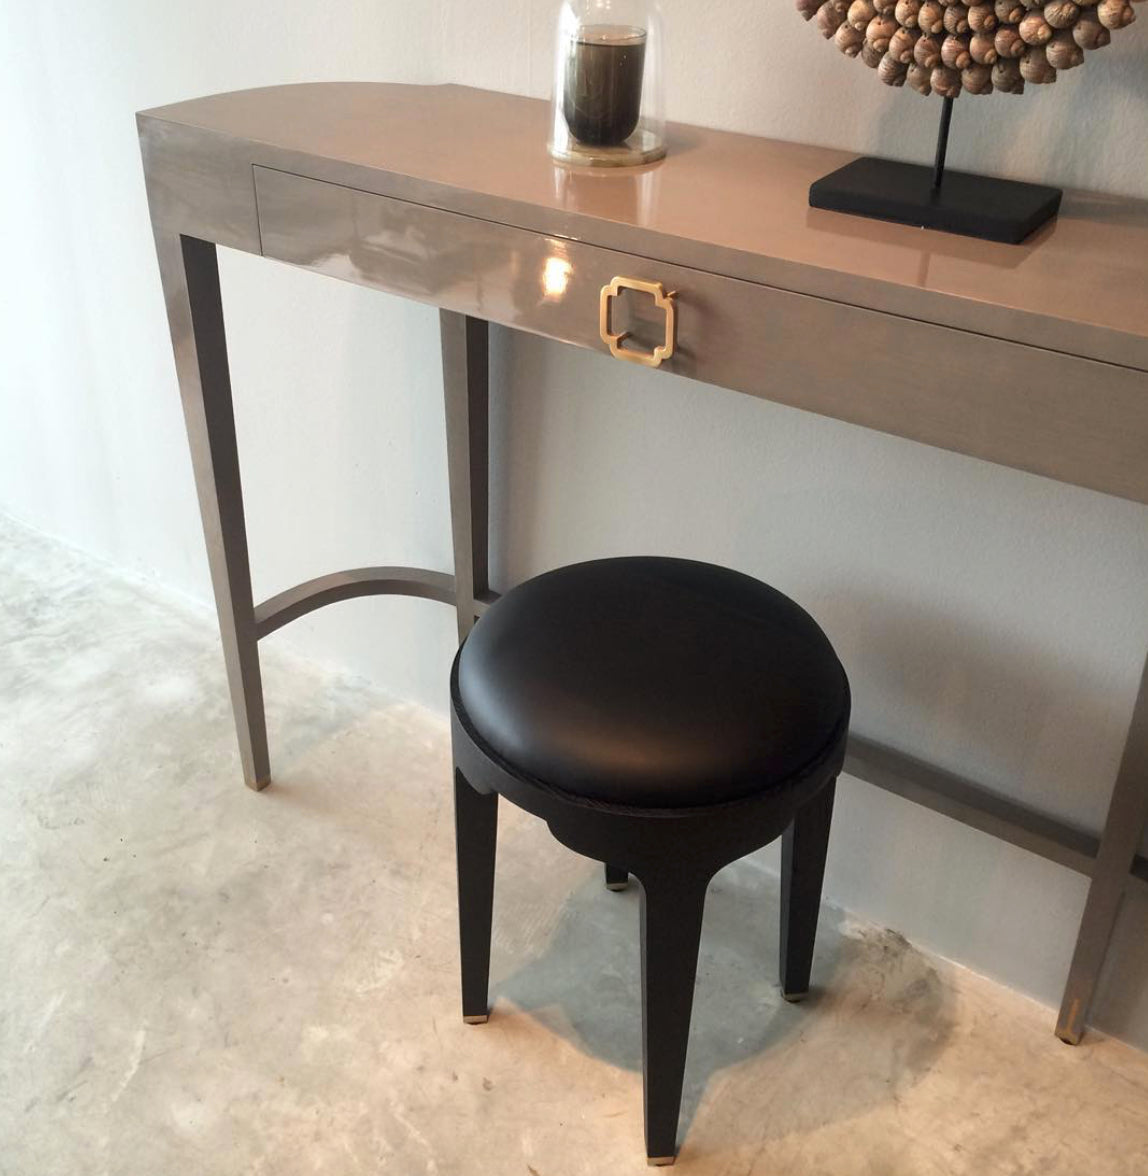 medaillon, medaillon console, lacquer console, beige console, high shine lacquer, brass, eastern, ming style, Chinese style, asian style, akar de Nissim, luxury furniture, designer furniture, minimalist, guimar barstool, guimar stool, black stool, barstool, akar logo, classic candle, akar de Nissim candles, glass dome, candle holder, fluid design, leather upholstery,